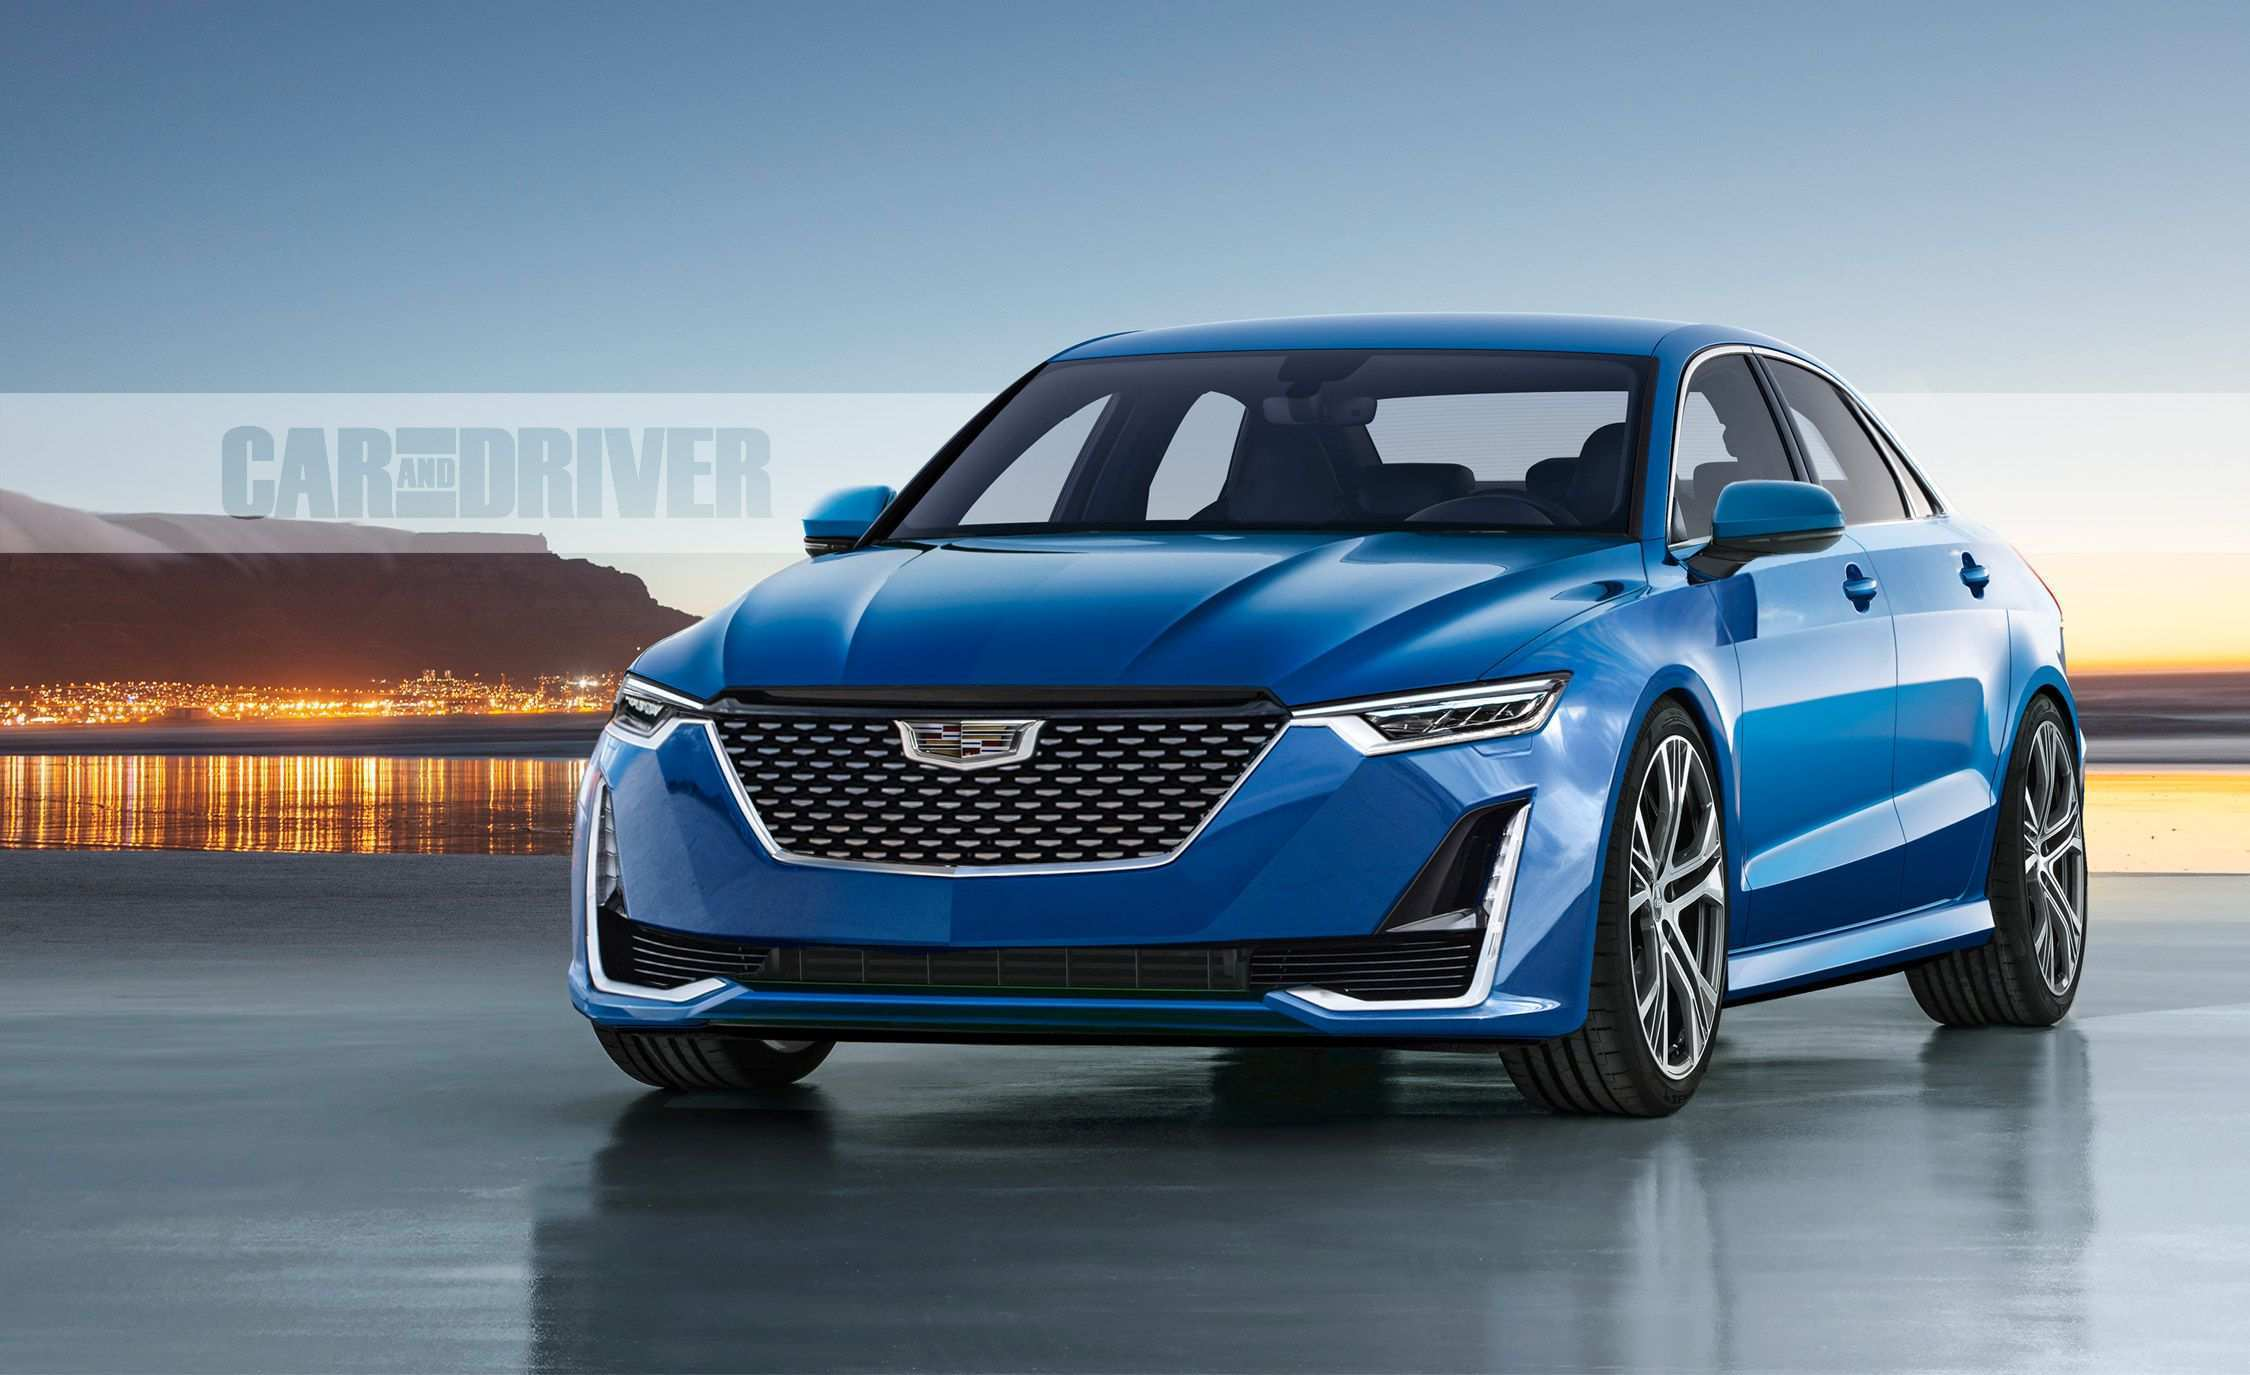 82 Gallery of 2019 Cadillac Ct3 Release Date with 2019 Cadillac Ct3